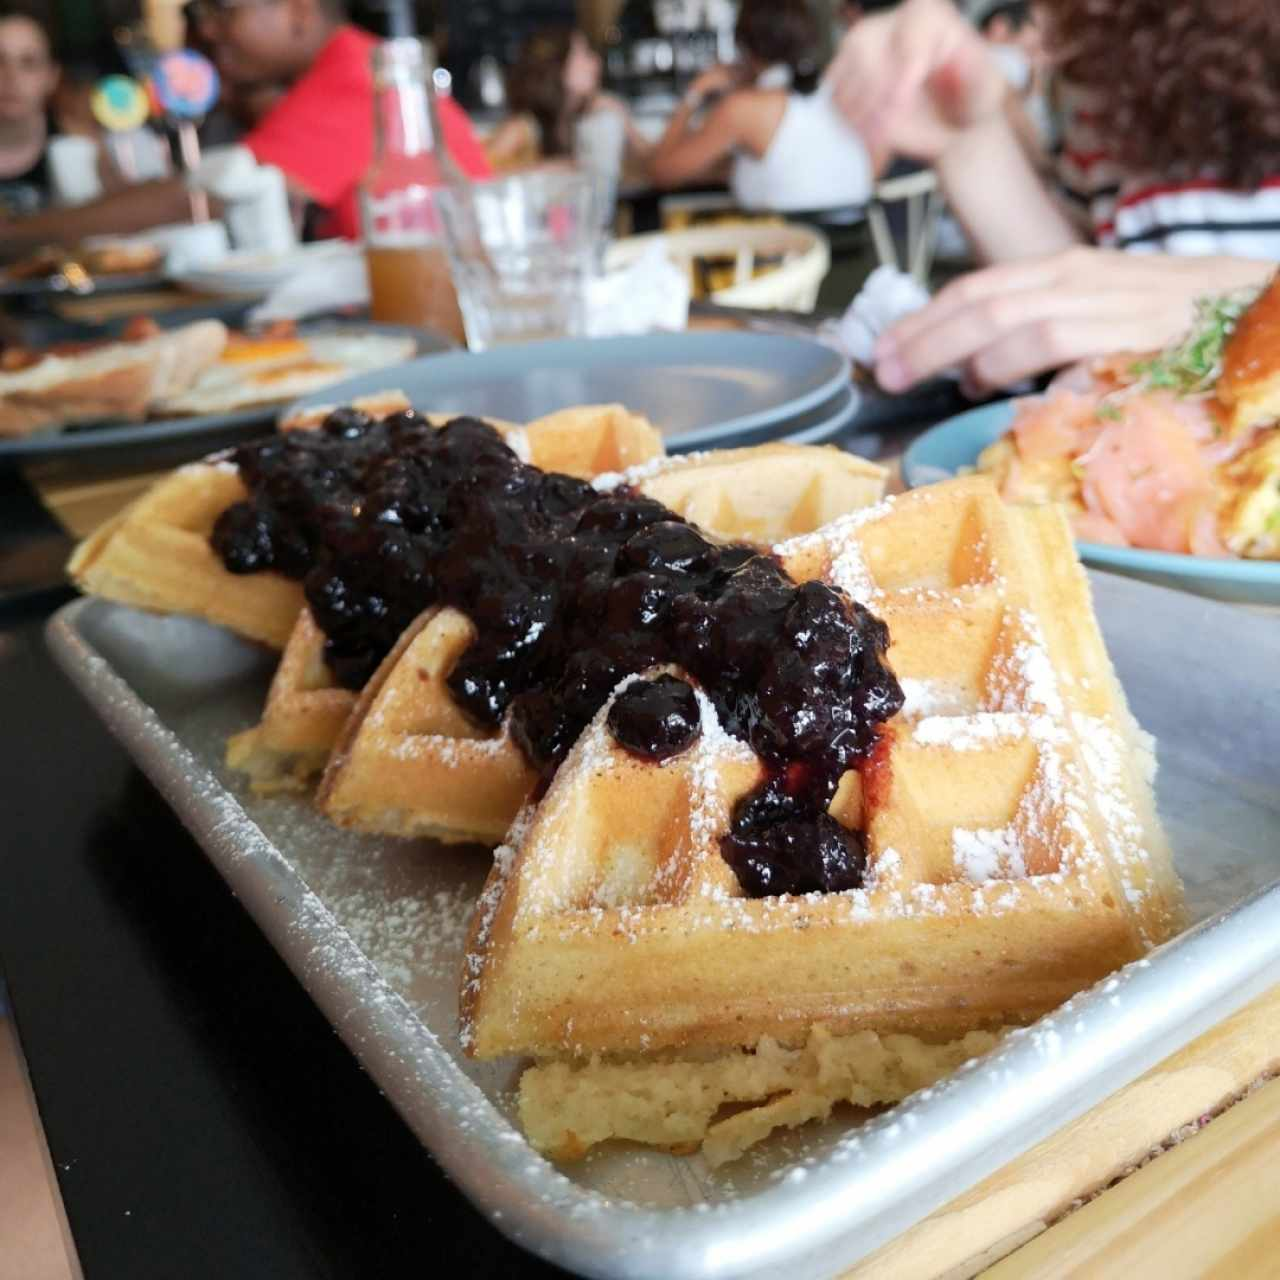 Waffles con blueberries